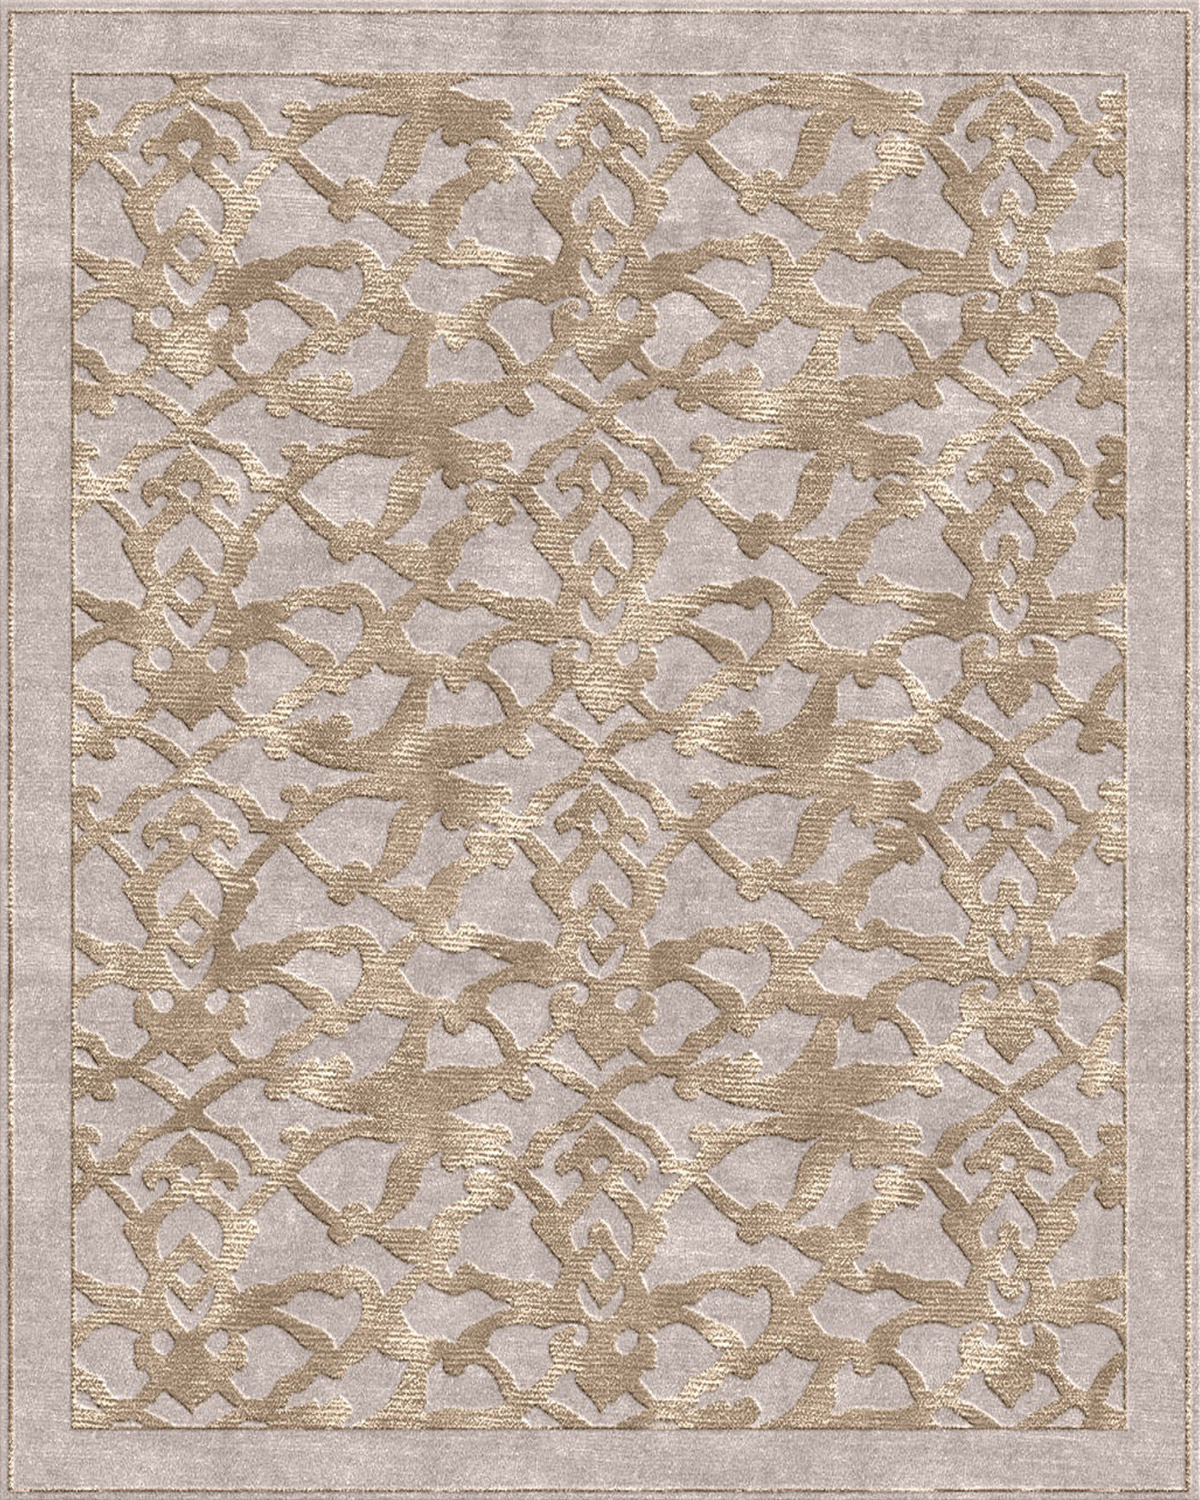 Arabesque Silver Taupe Rug Bazaar Velvet London Rugs